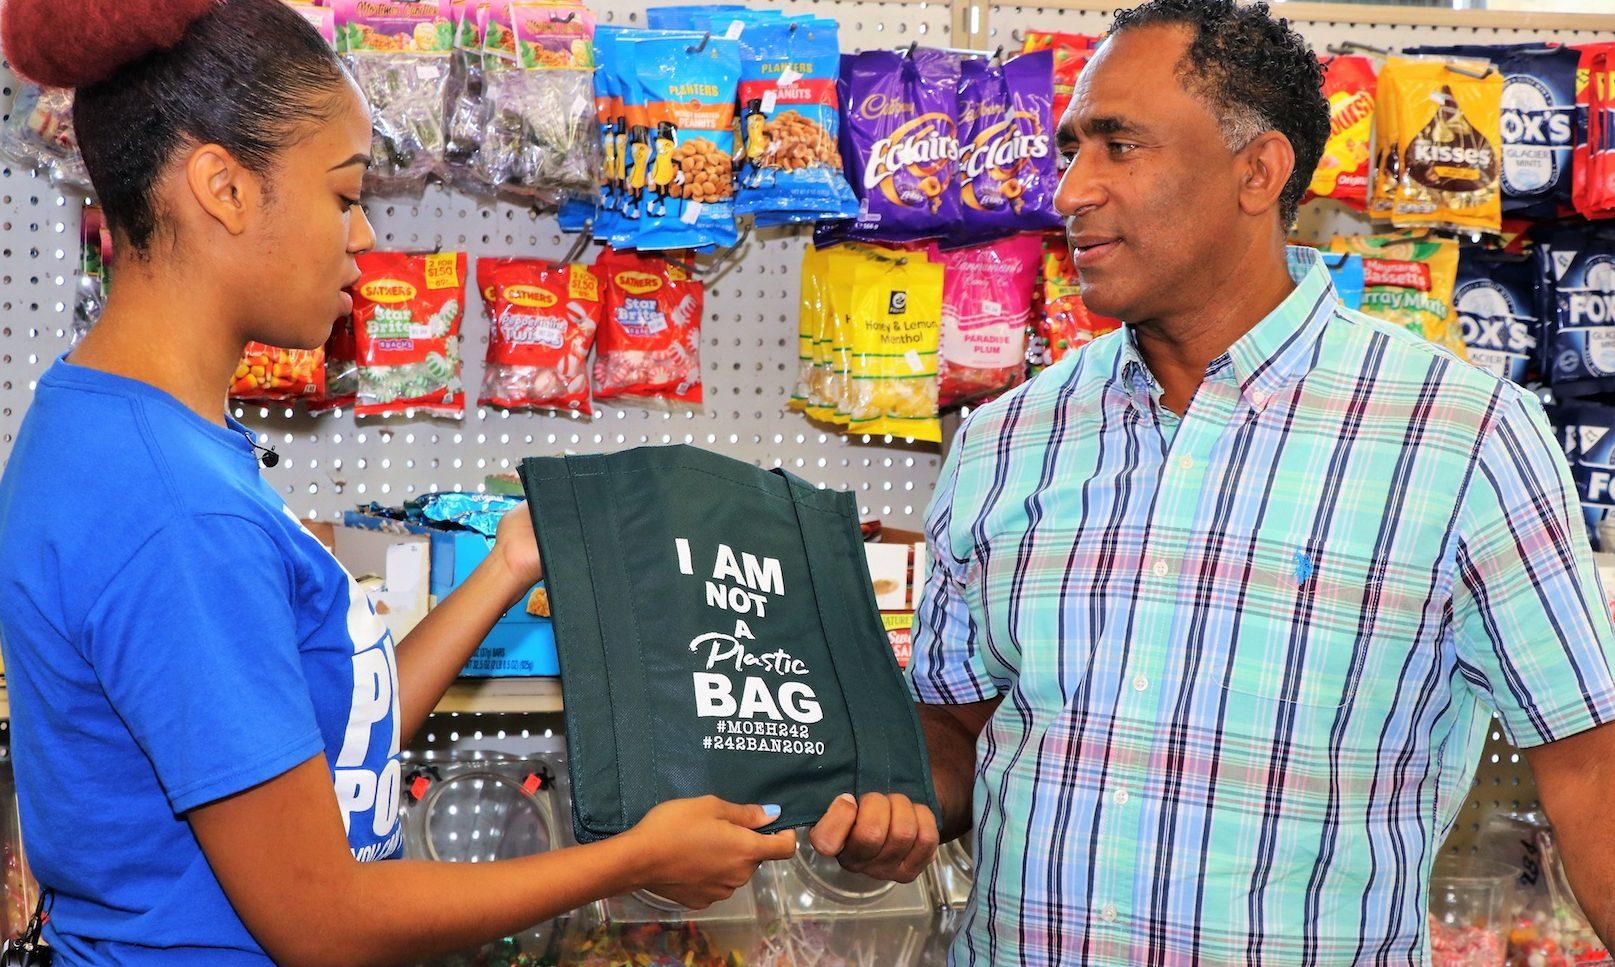 Environment and Housing hosts shopping bag giveaway